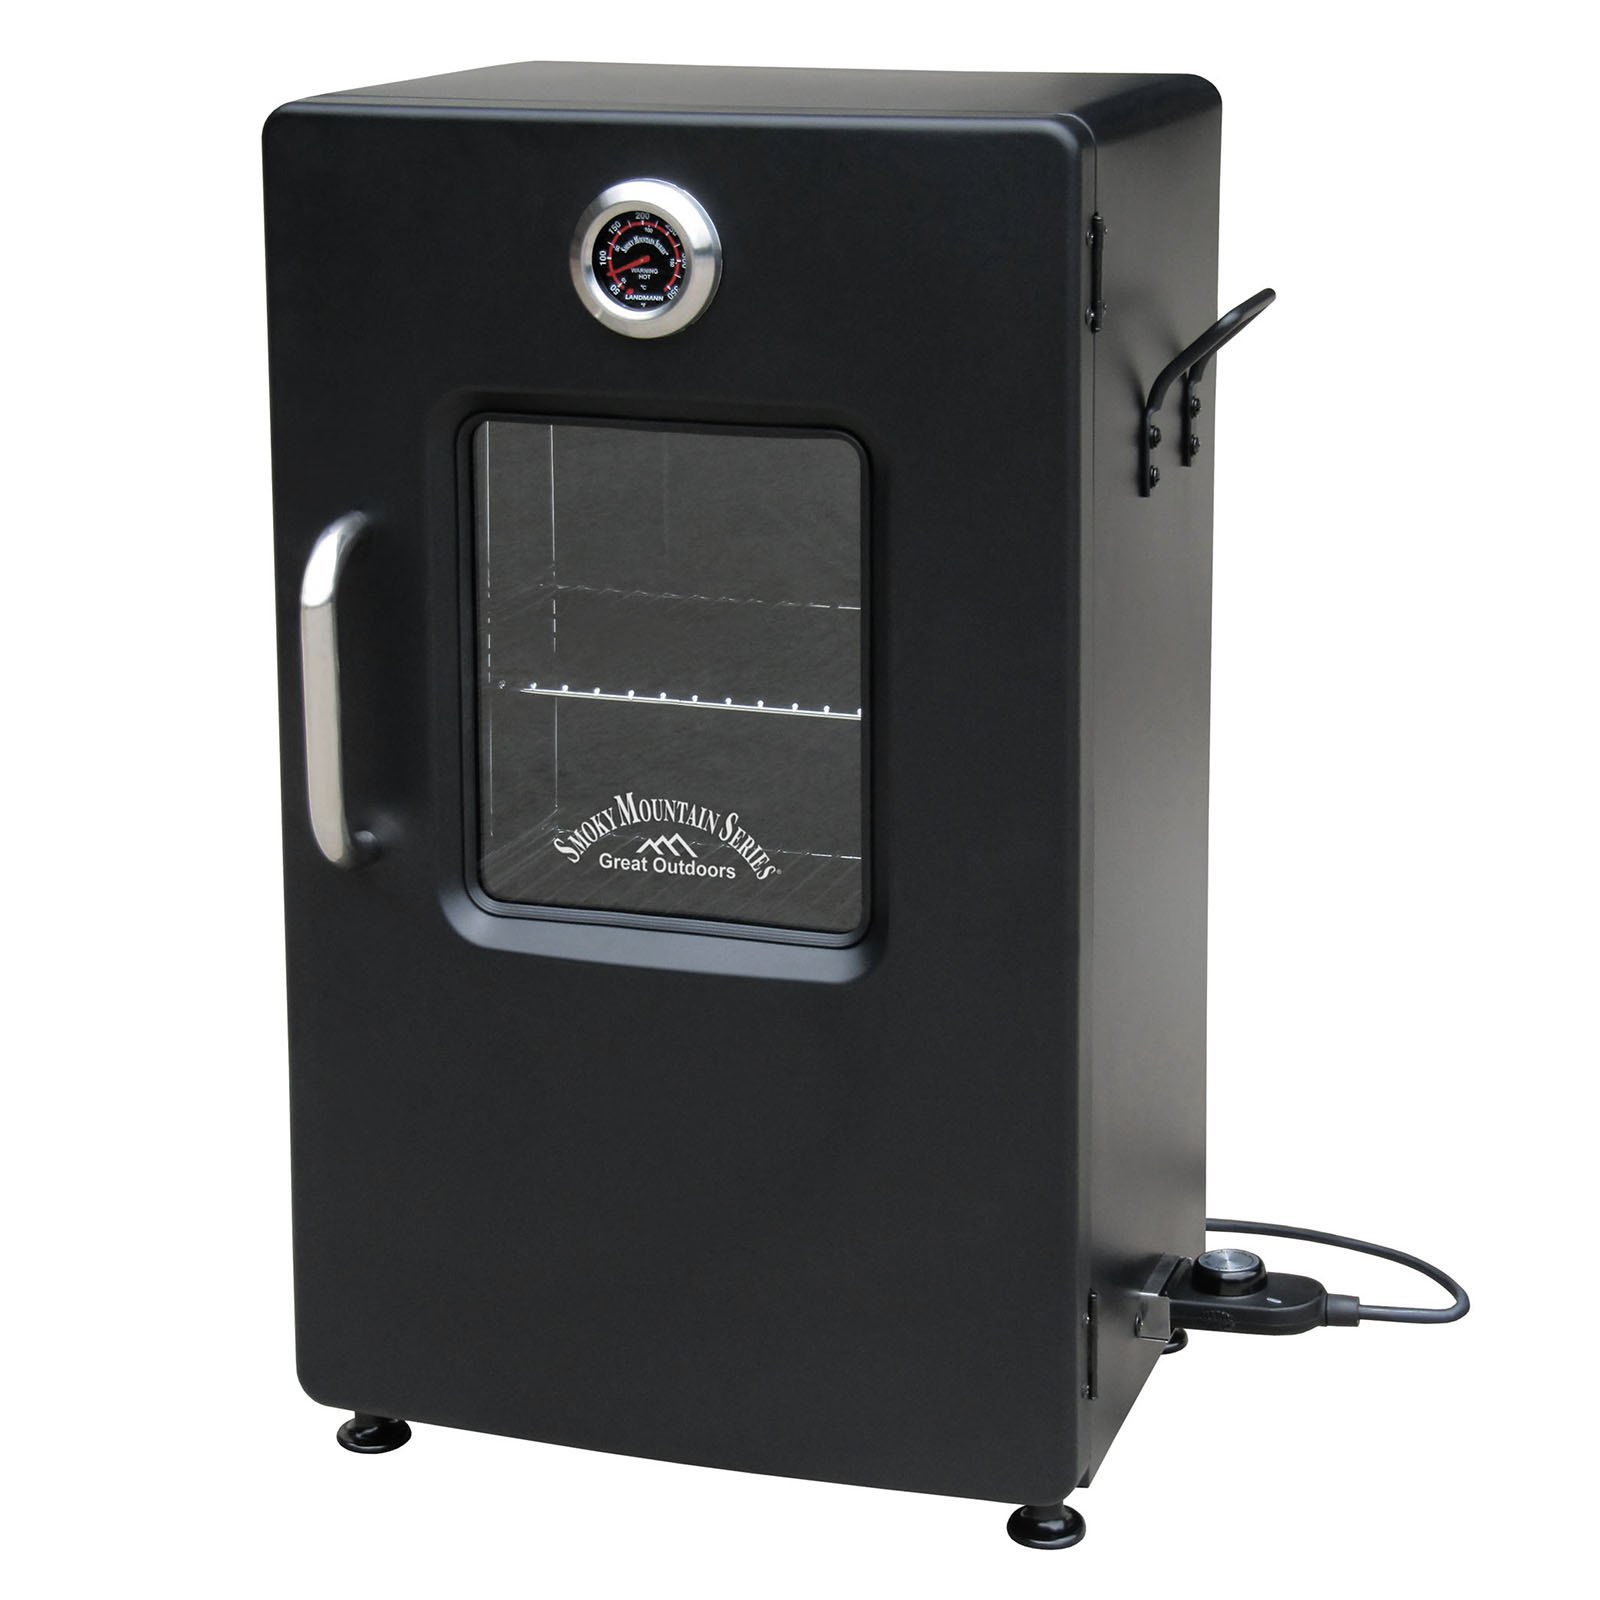 Smoky Mountain Electric Food Smoker - Black